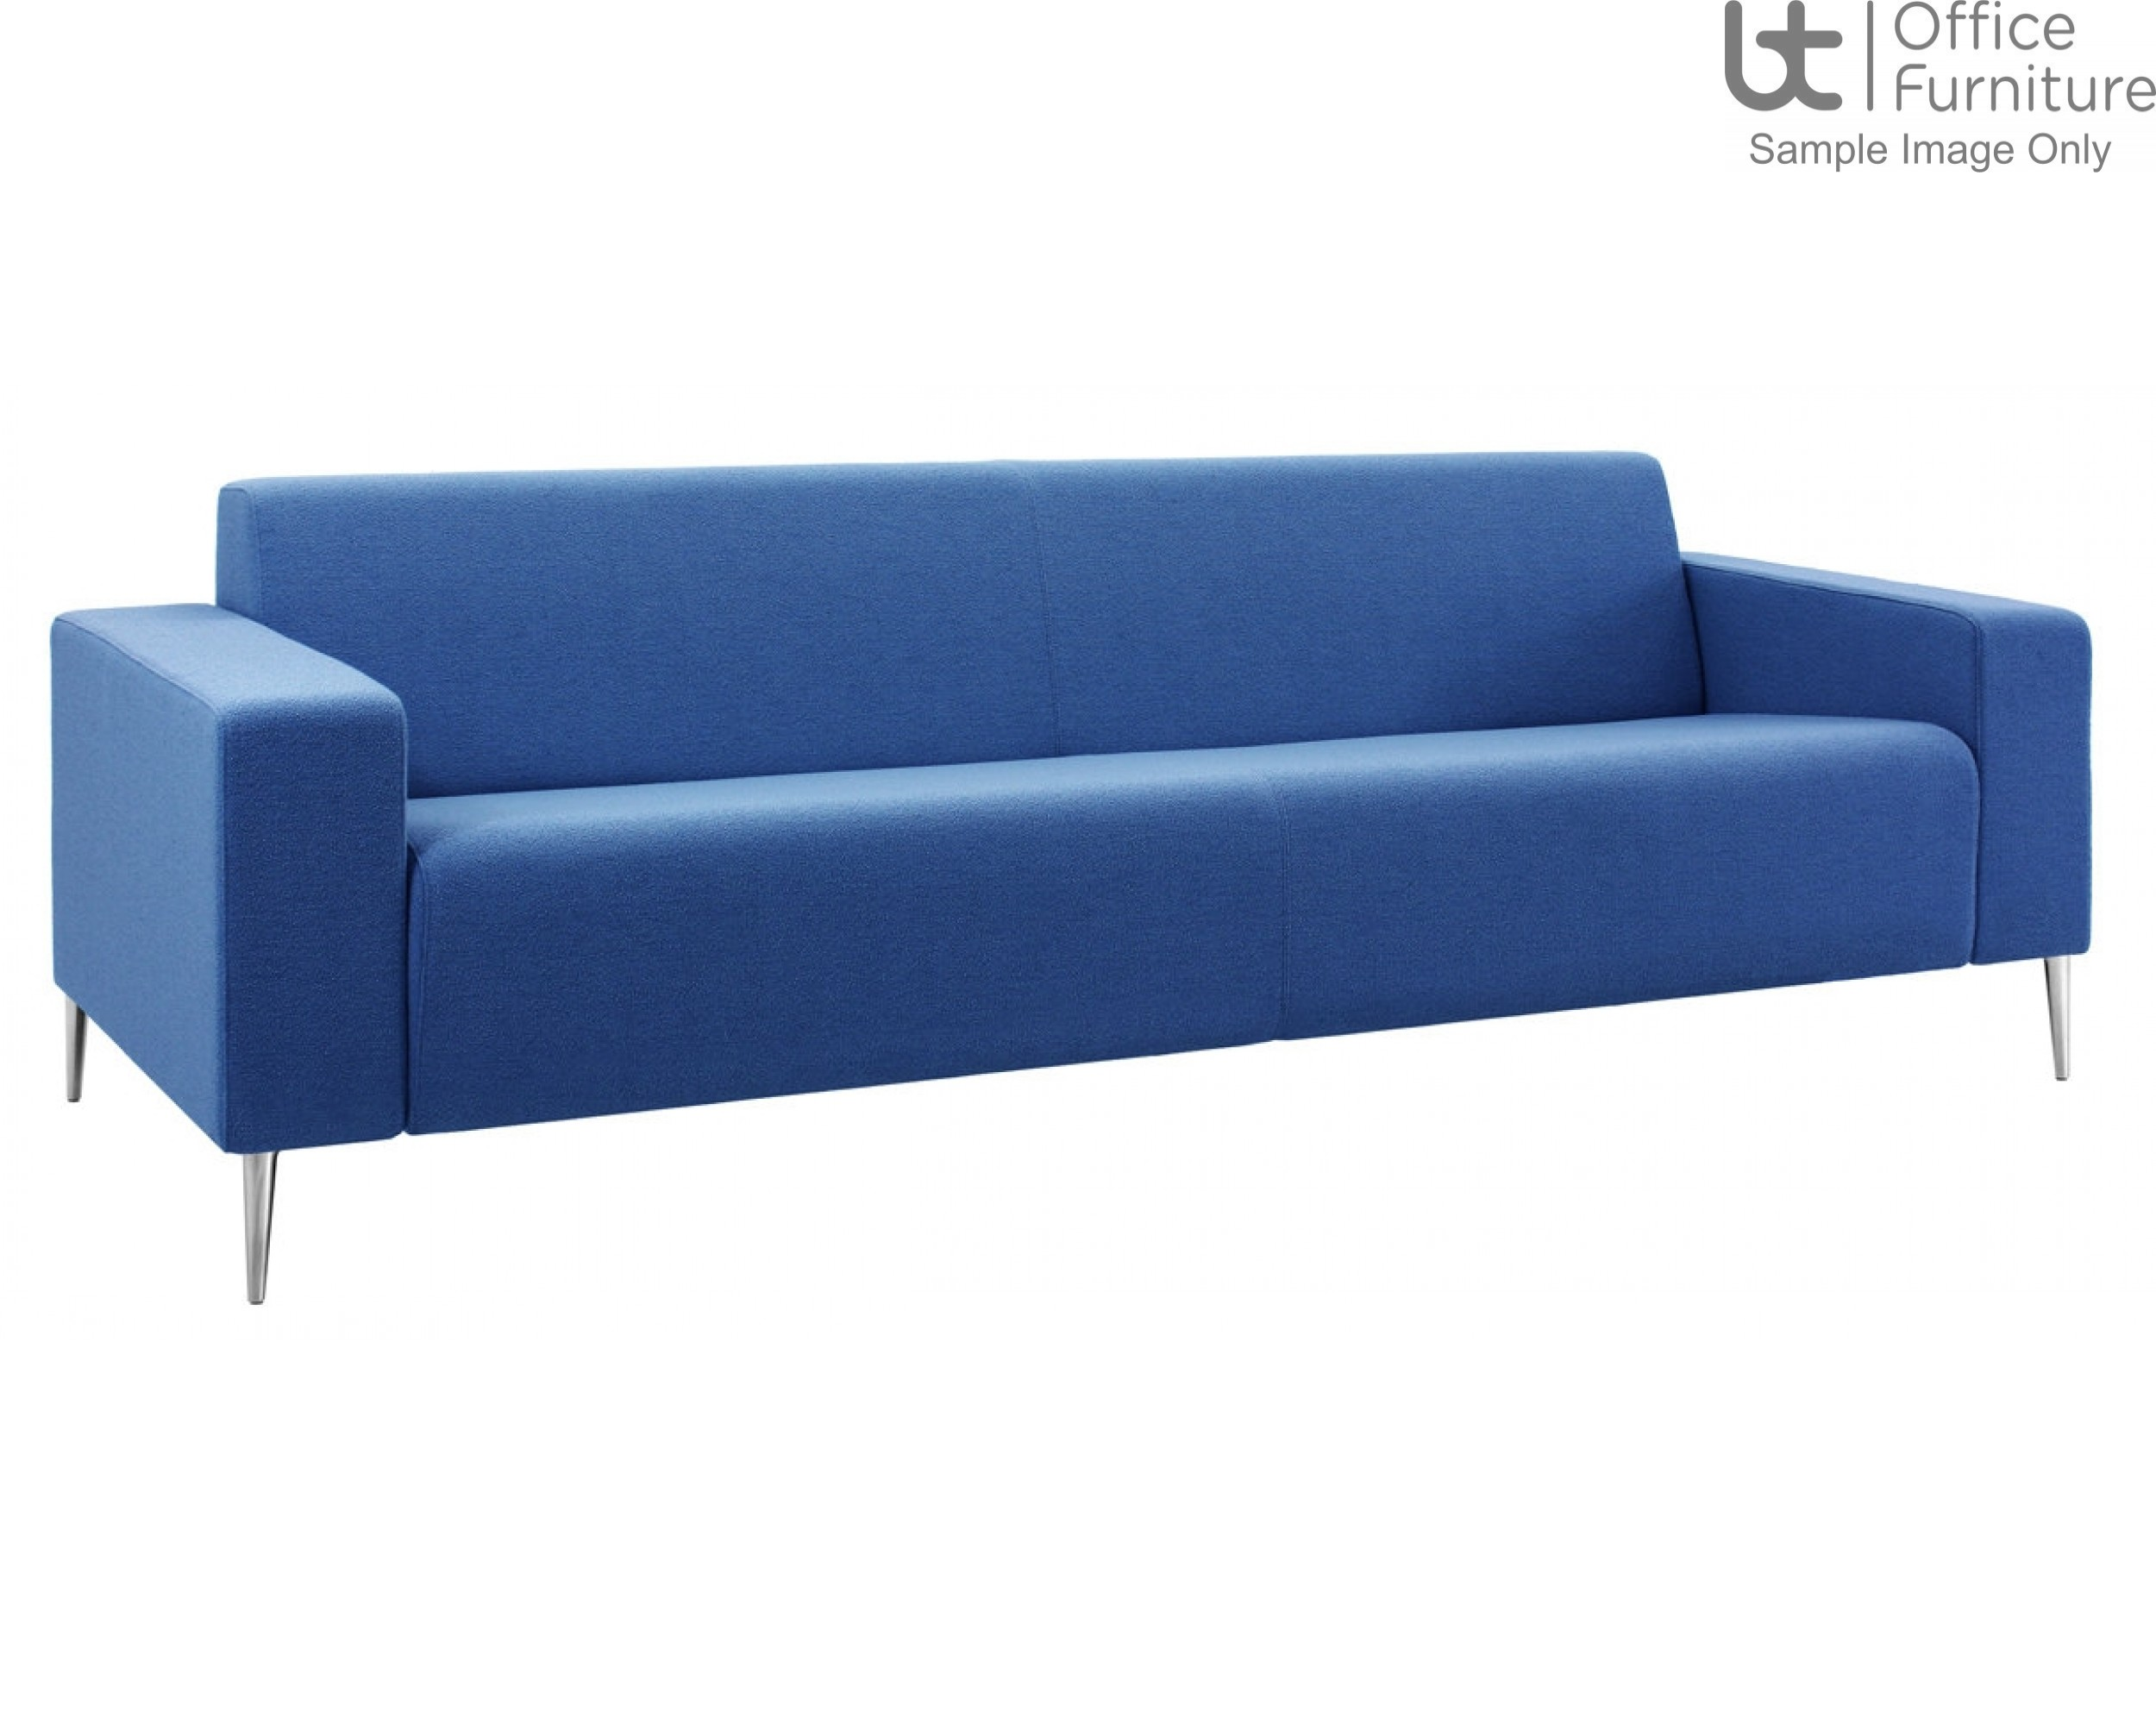 Verco Soft Seating - Bradley Three Seater Couch with Two Arms